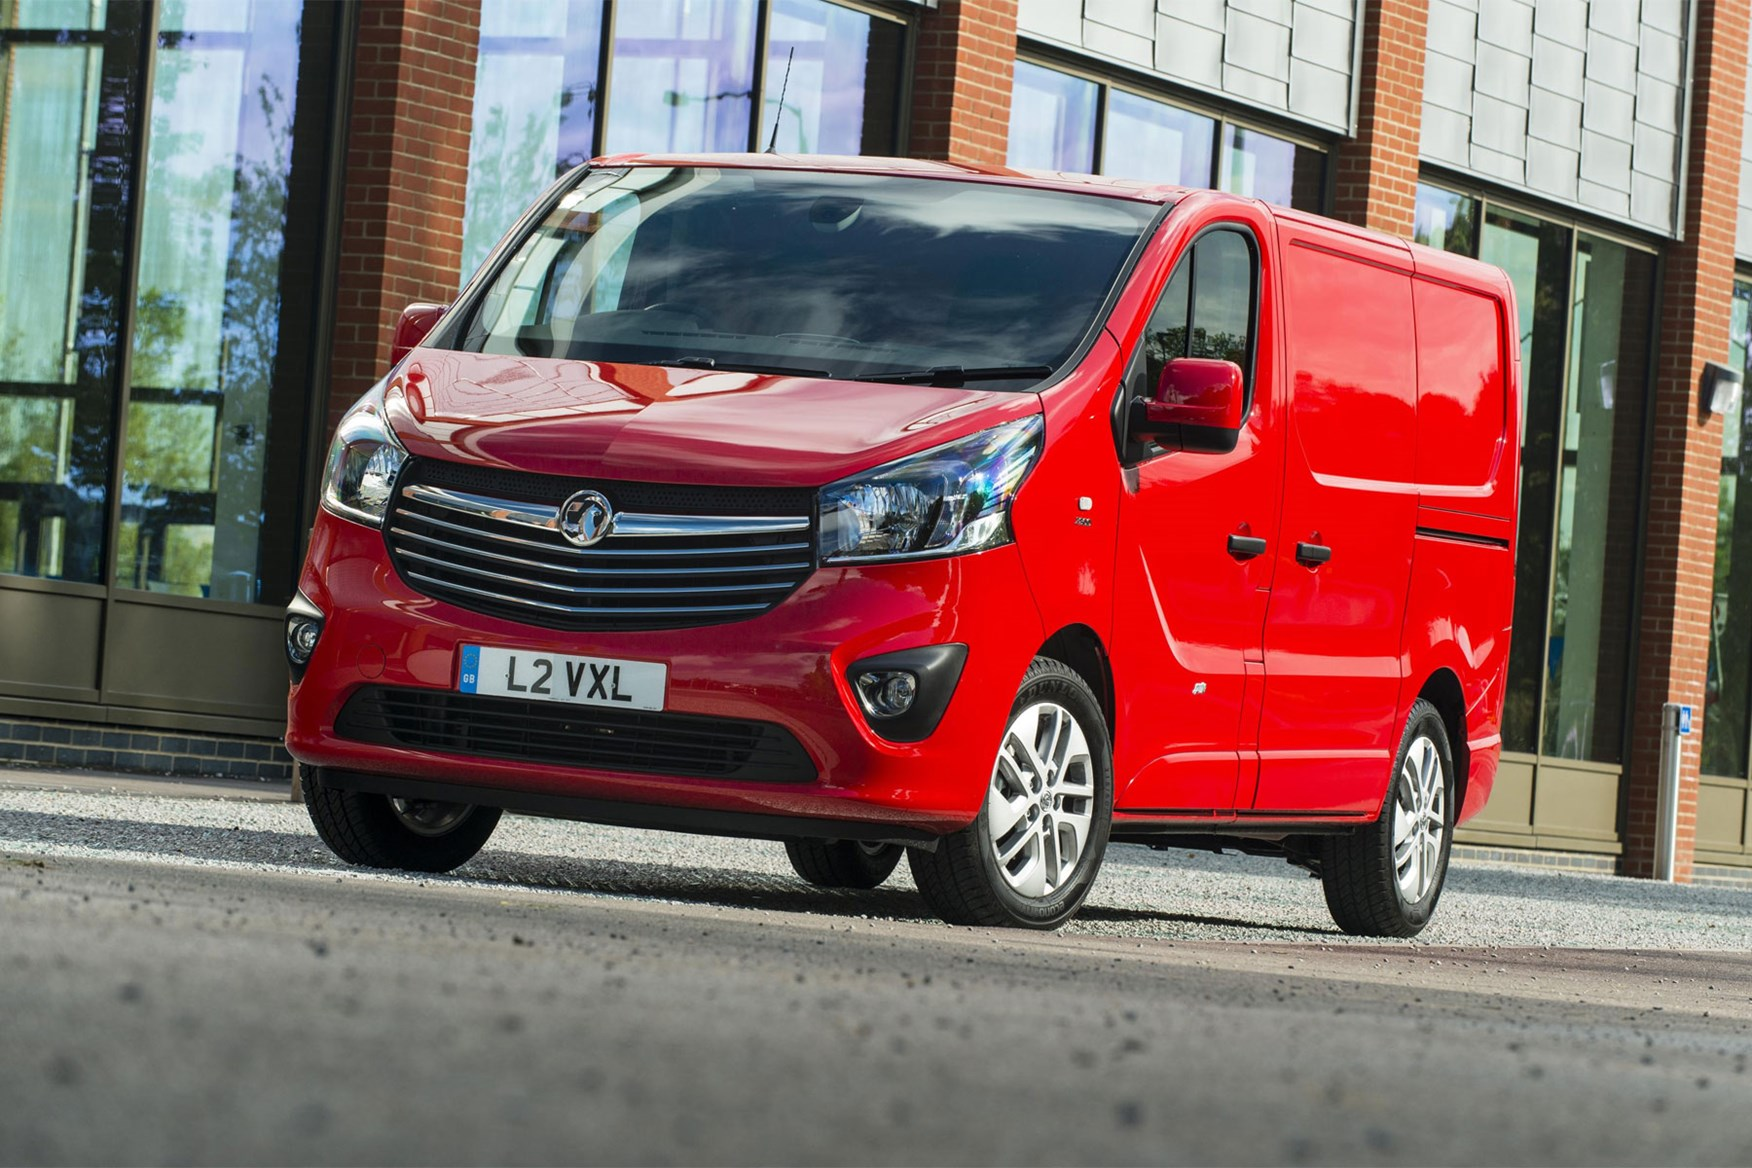 Vauxhall Vivaro review - front view, red